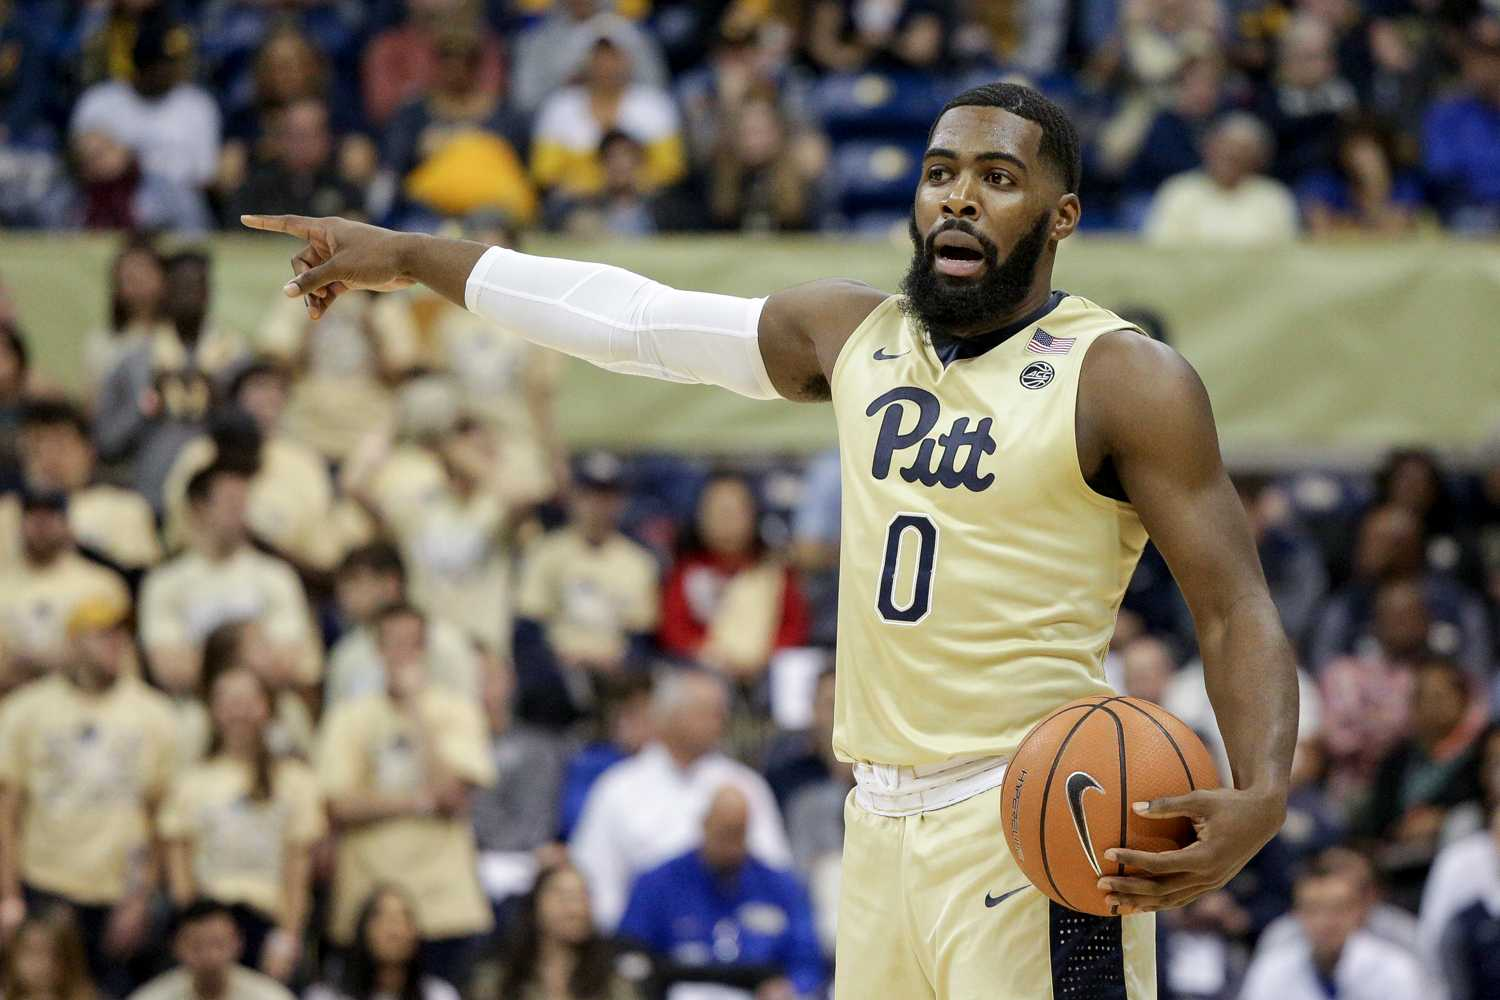 Guard Jared Wilson-Frame scored 19 points during Pitt's win over McNeese State Saturday. (Photo by Thomas Yang / Senior Staff Photographer)